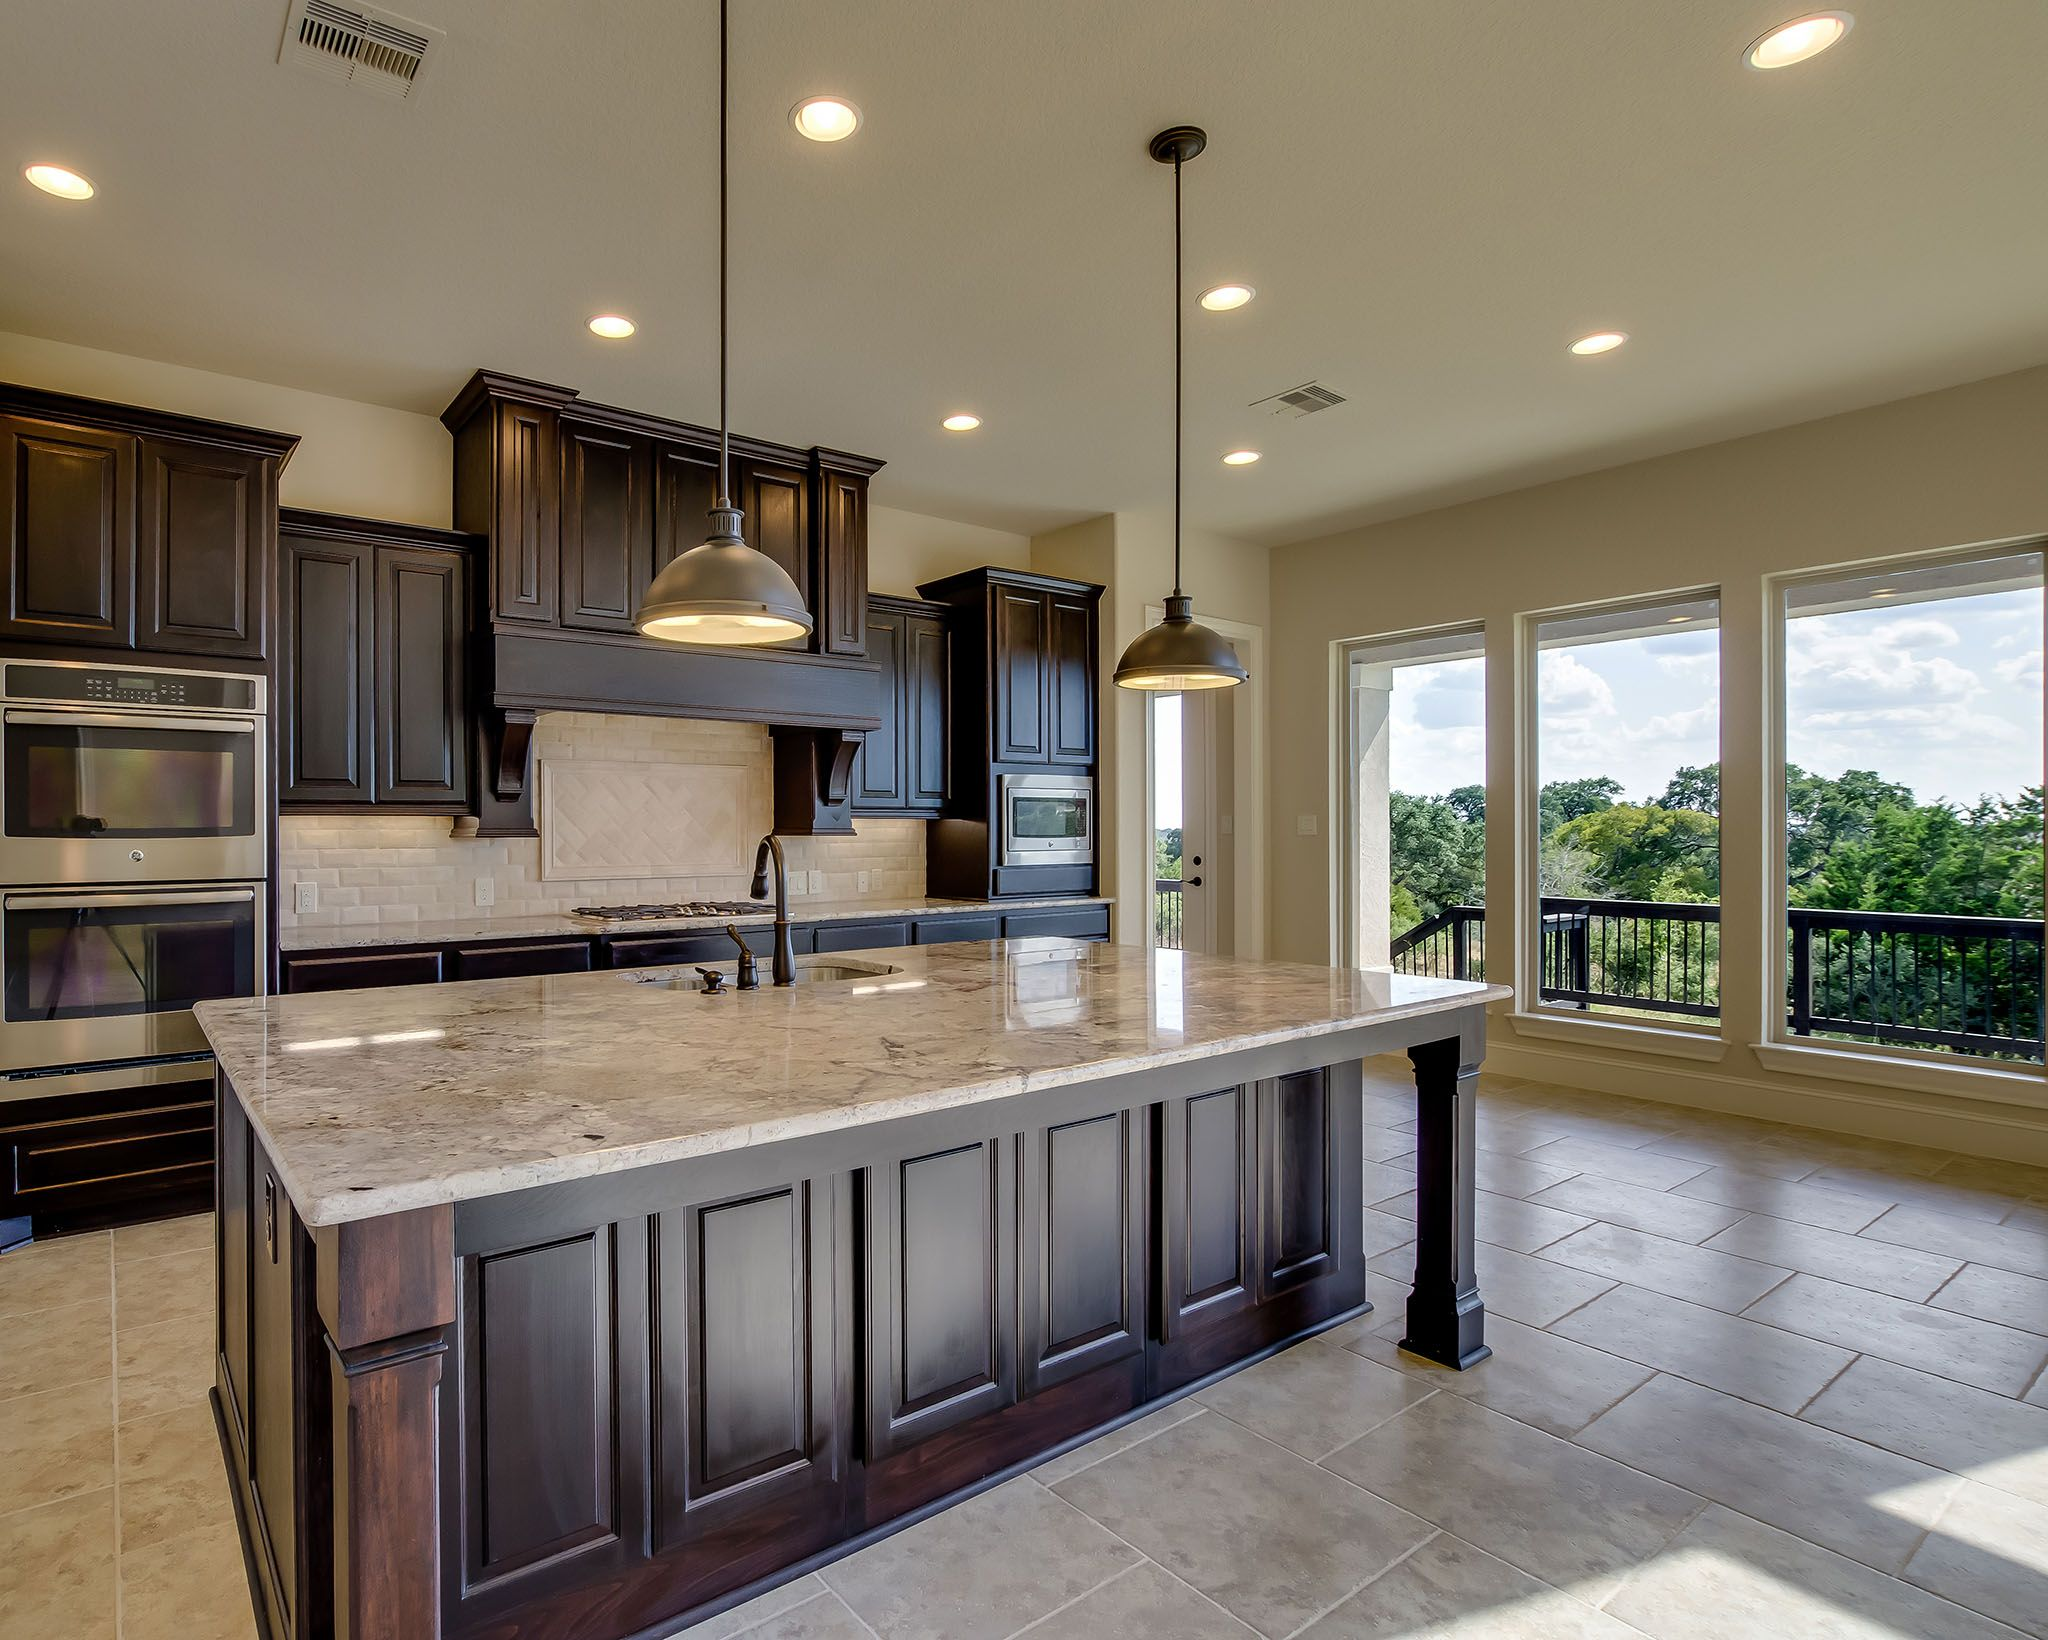 Vintage Oaks Home Ready for Move-In - 4,931 Sq. Ft. - light granite ...